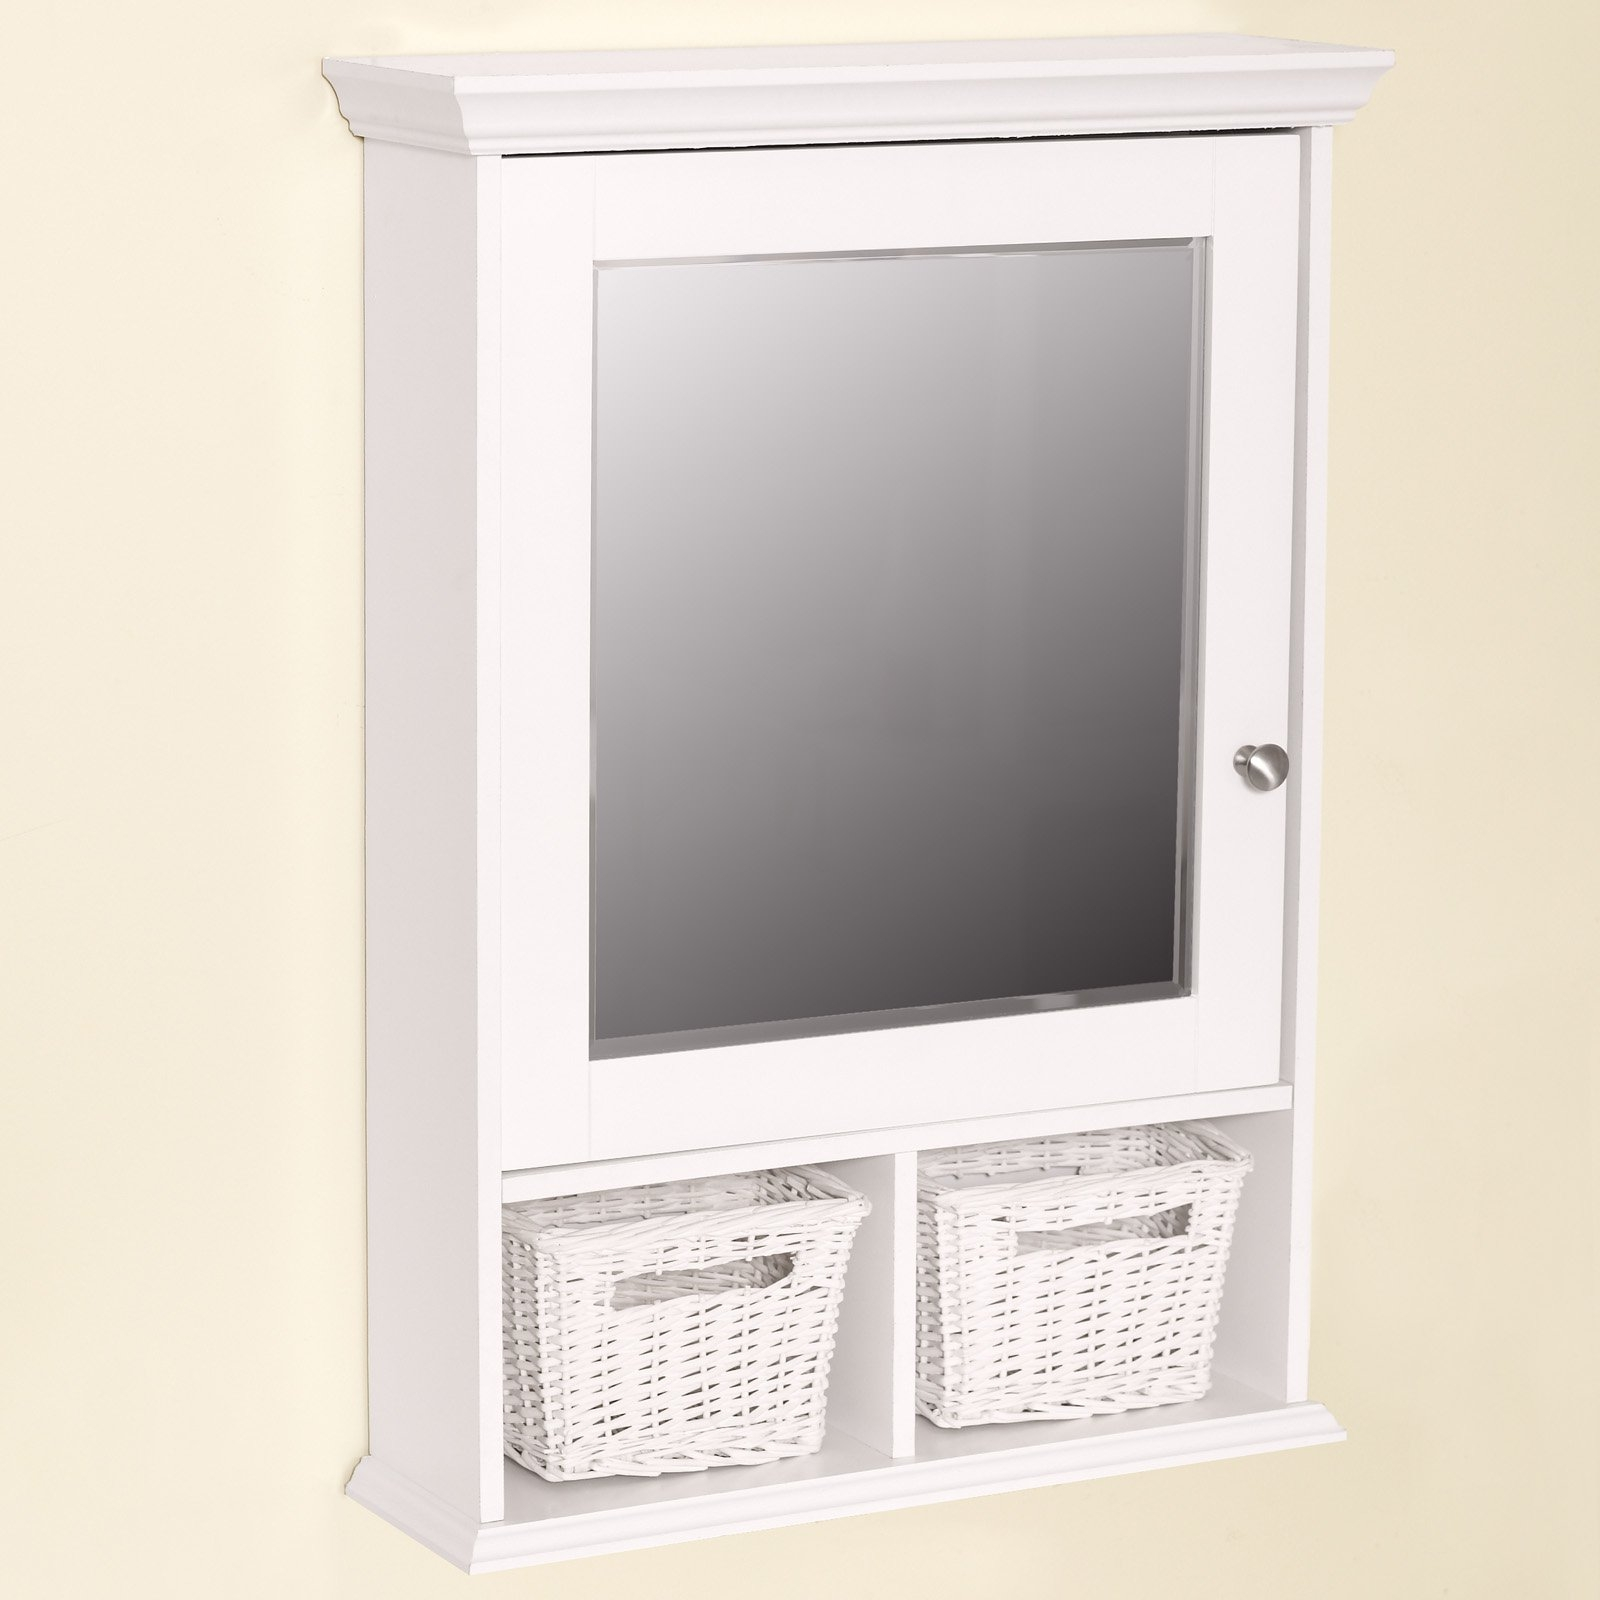 White Bathroom Cabinet With Baskets